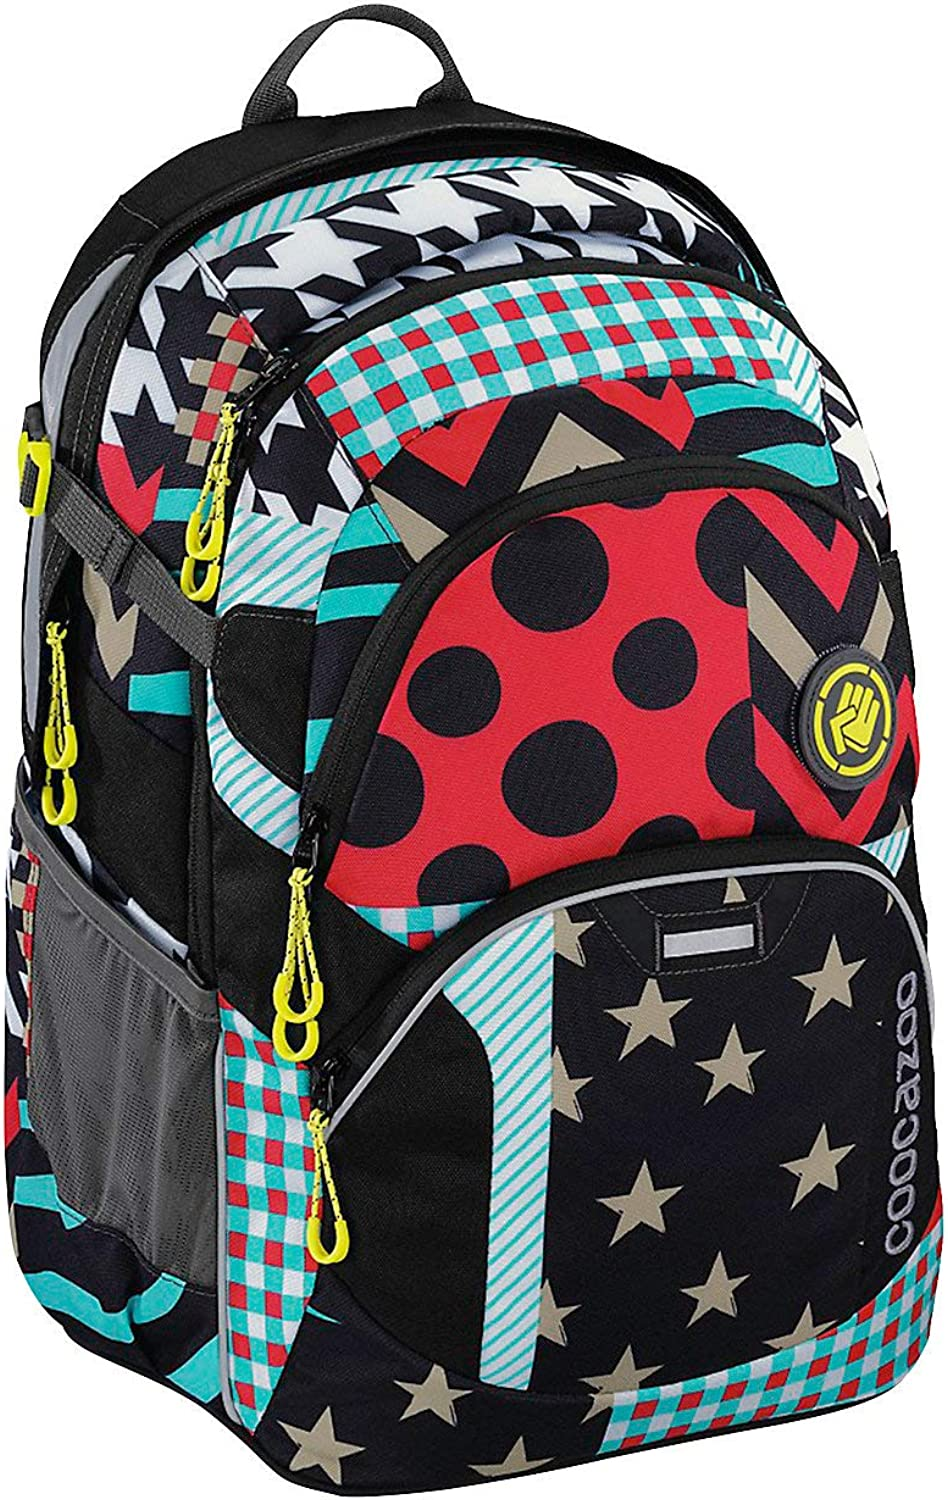 Coocazoo School Backpack JobJobber 3 Match Patch Polyester 30 l